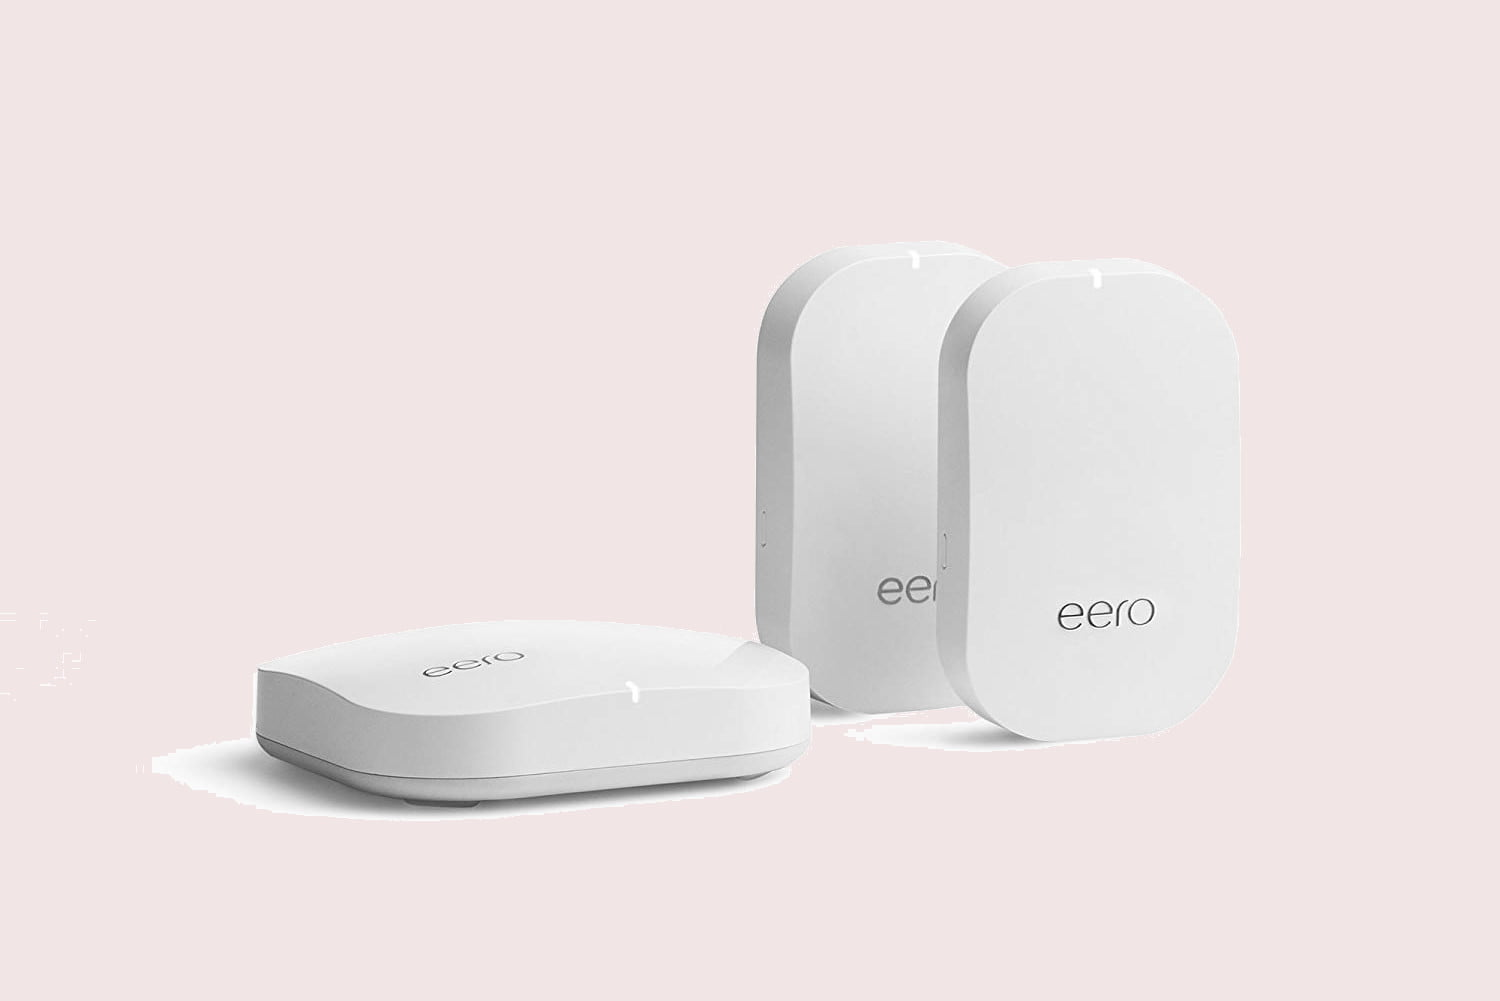 amazon drops prices for eero home mesh wi fi systems wifi system  1 pro 2 beacons